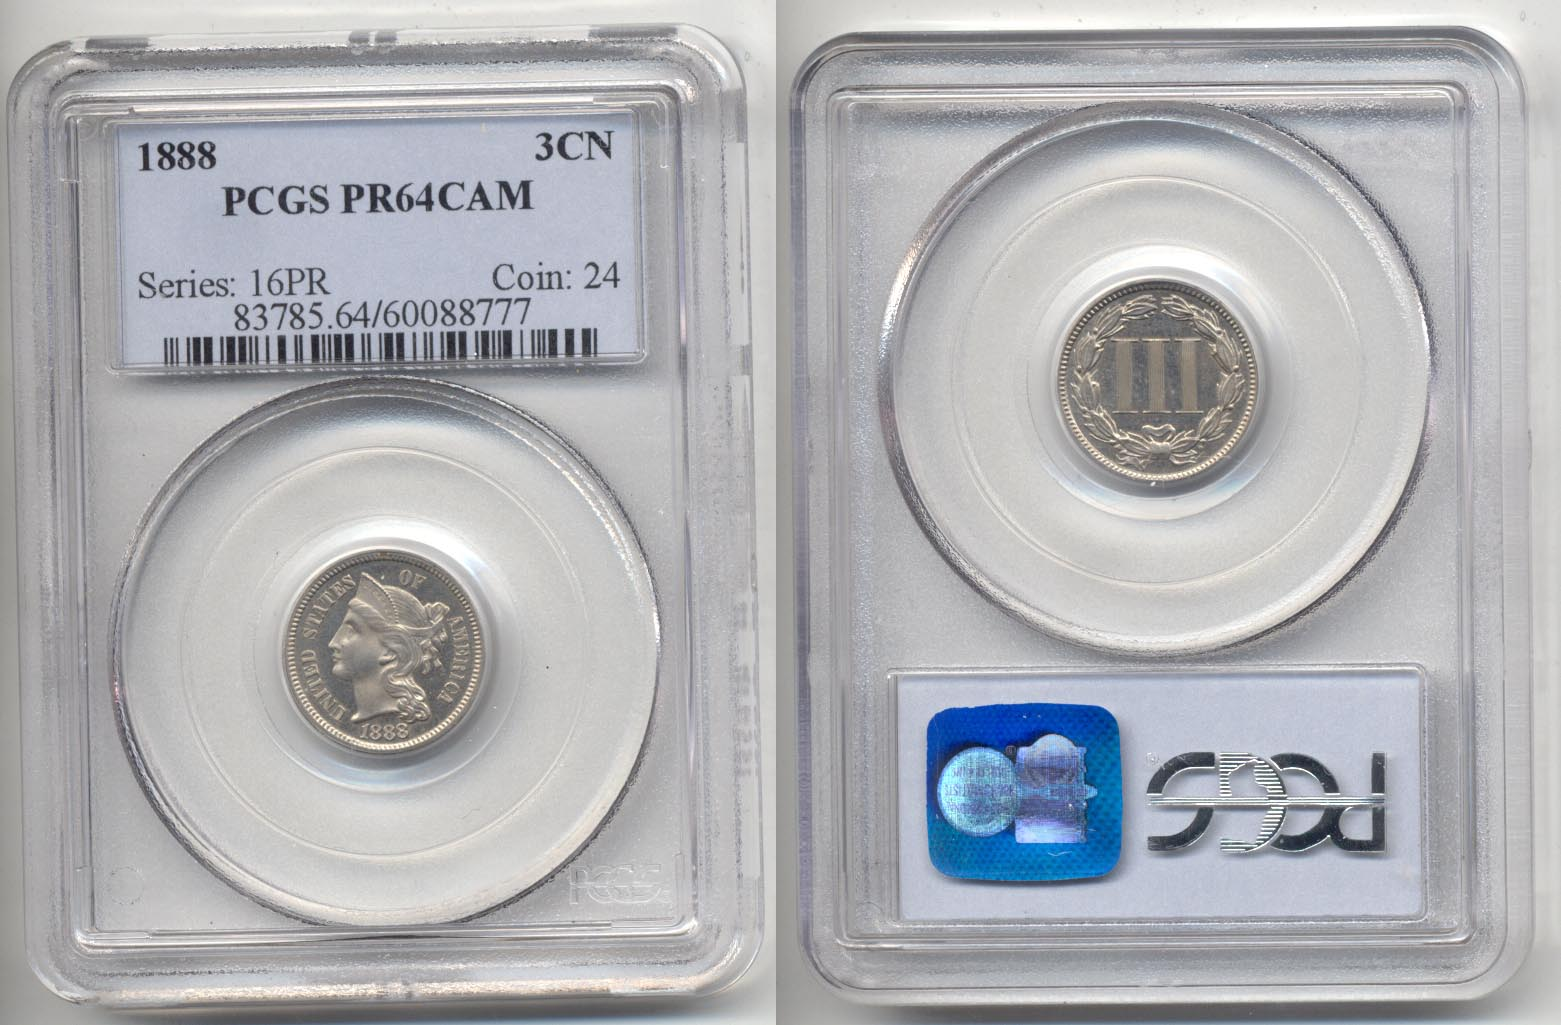 1888 Three Cent Nickel PCGS Proof-64 Cameo